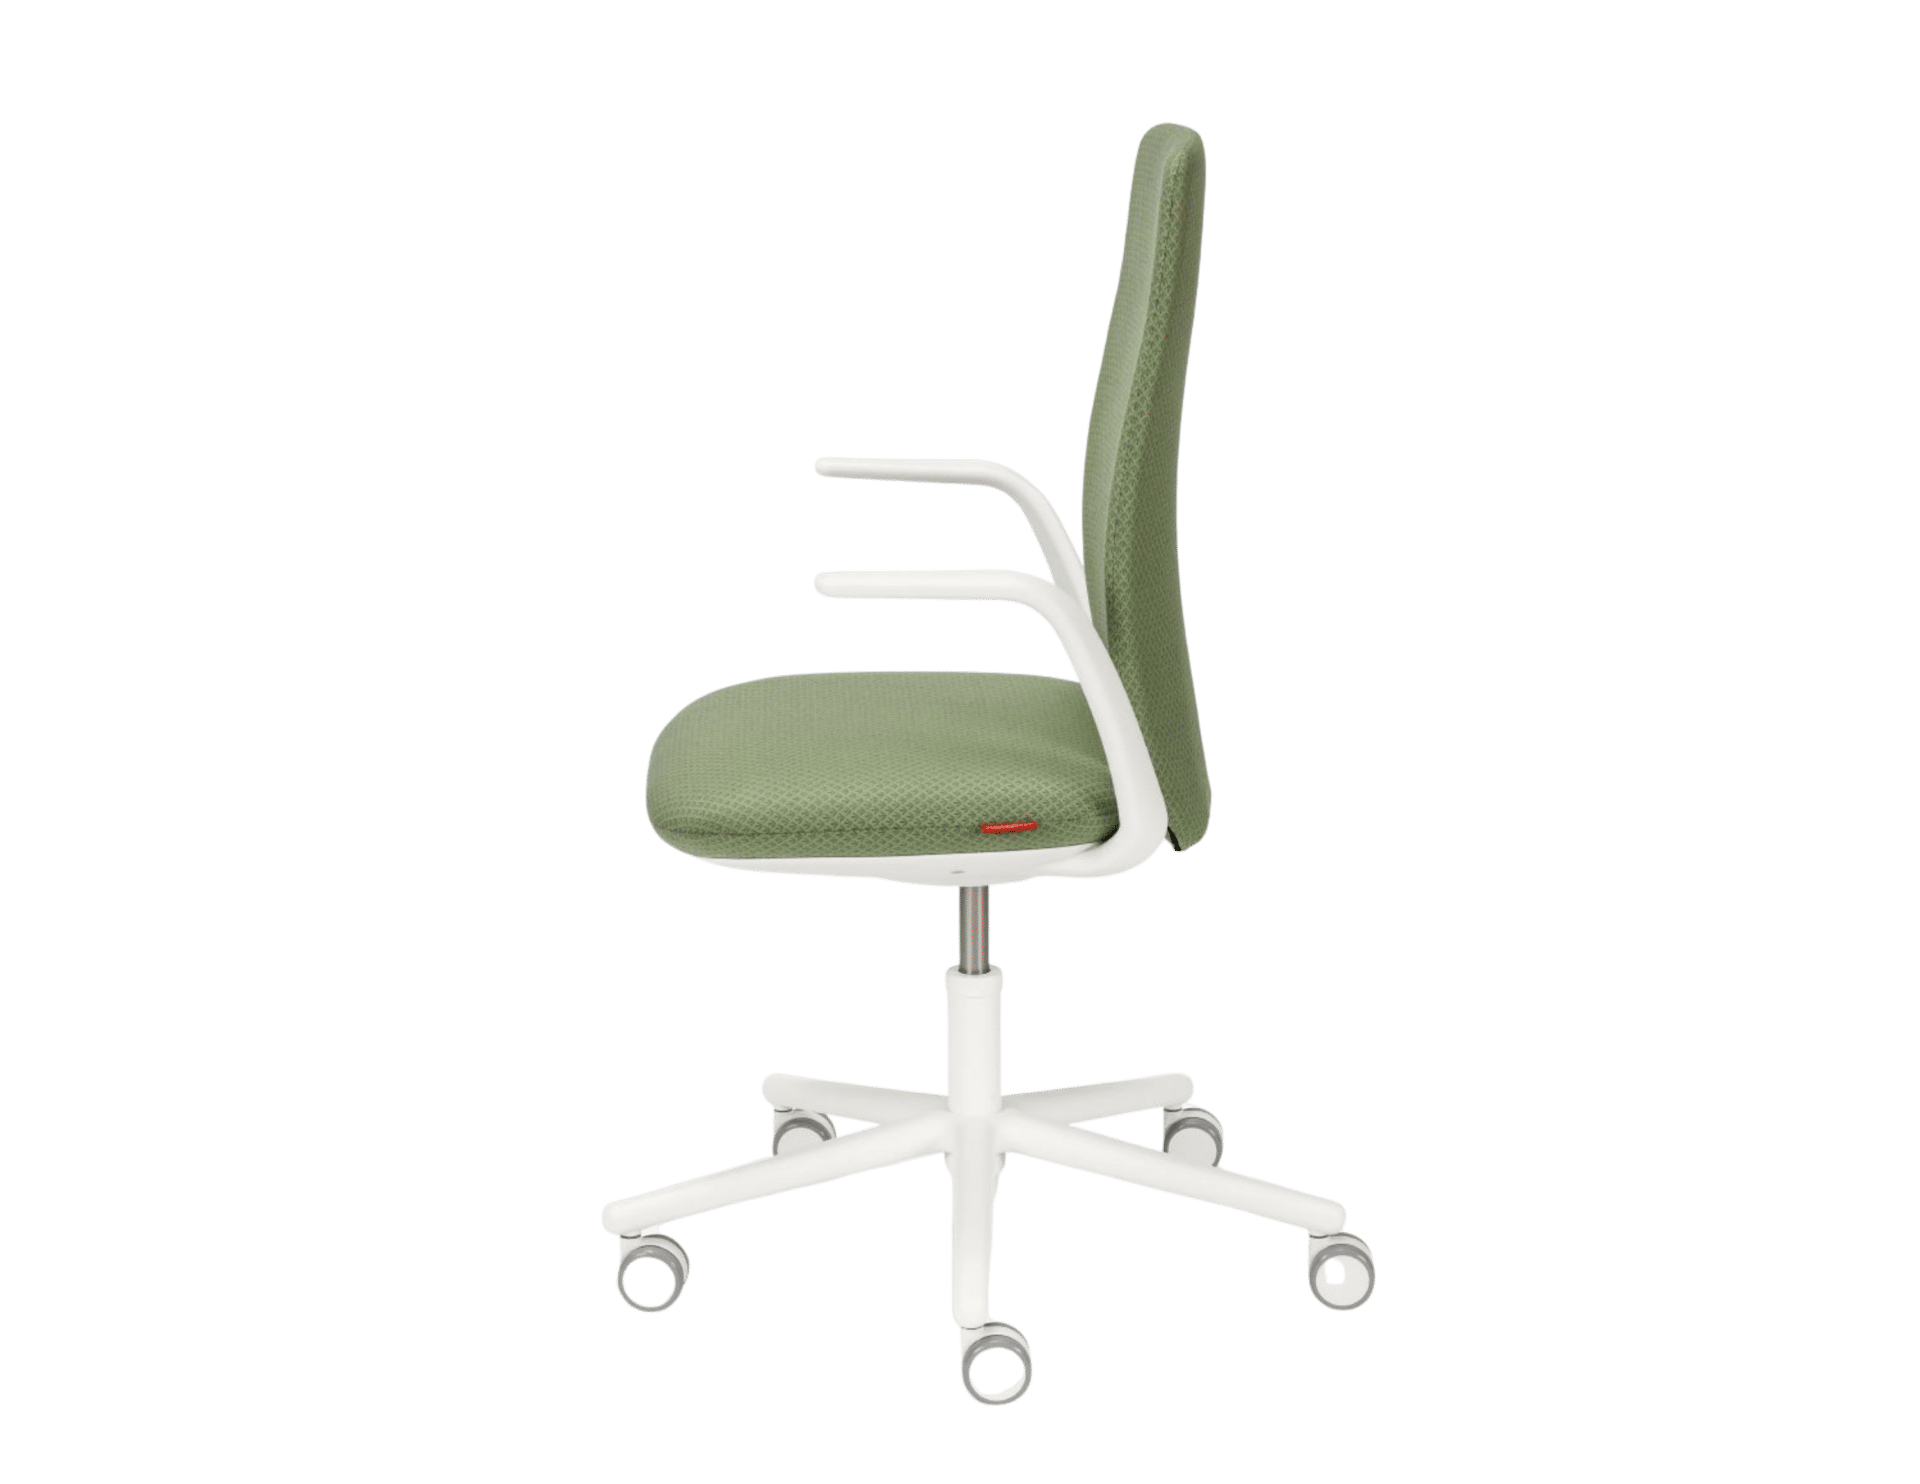 products_nia_chair_3